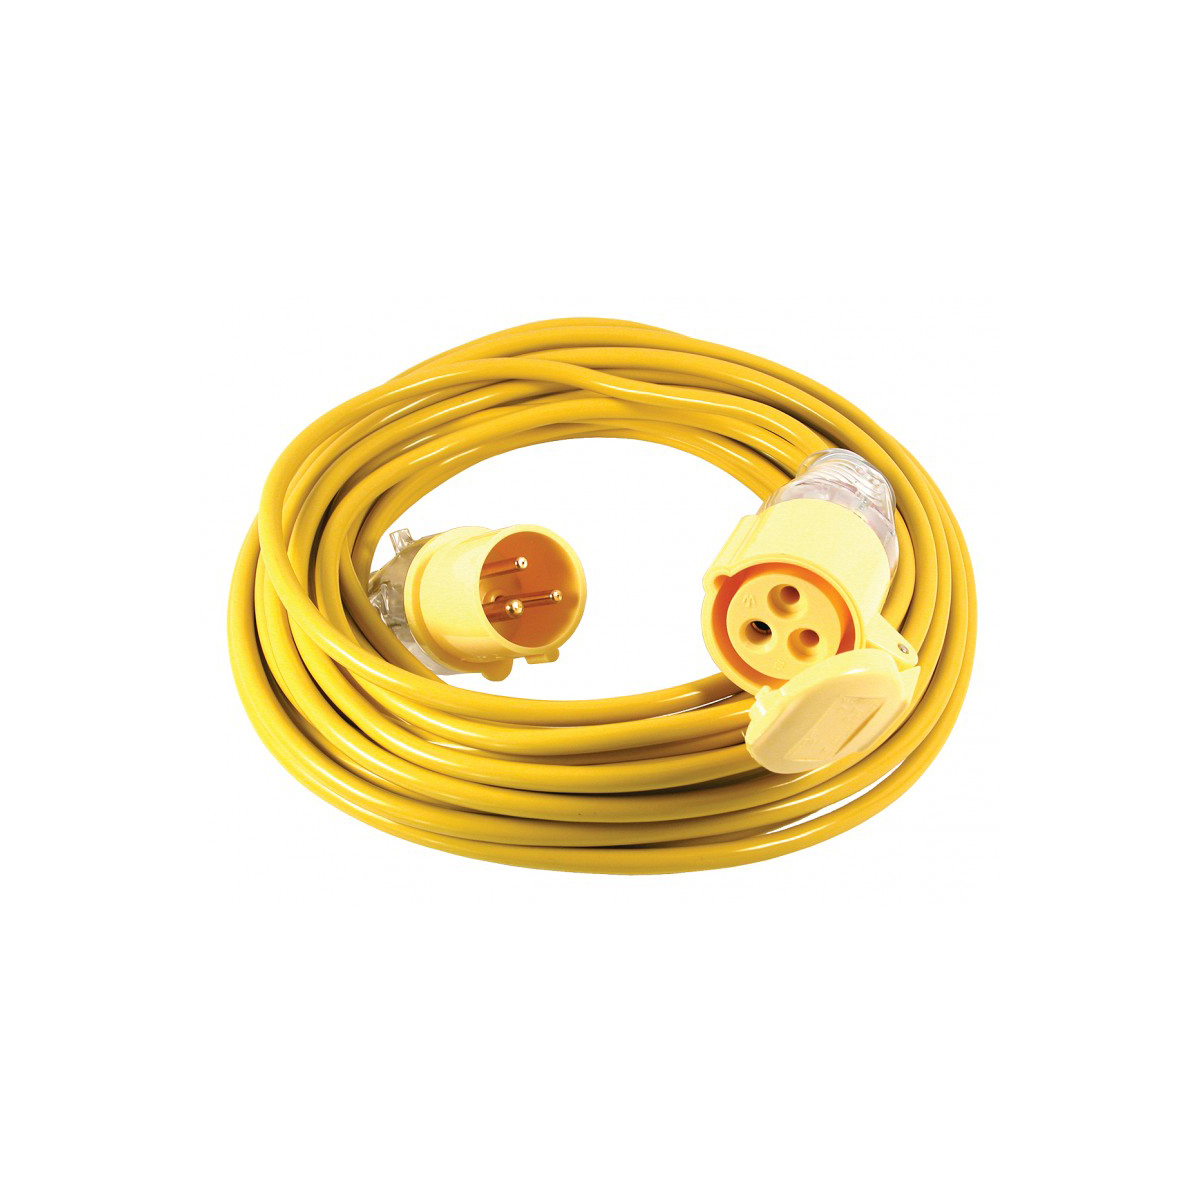 14 Metre 110V 16 Amp Extension Lead 1.5mm Cable